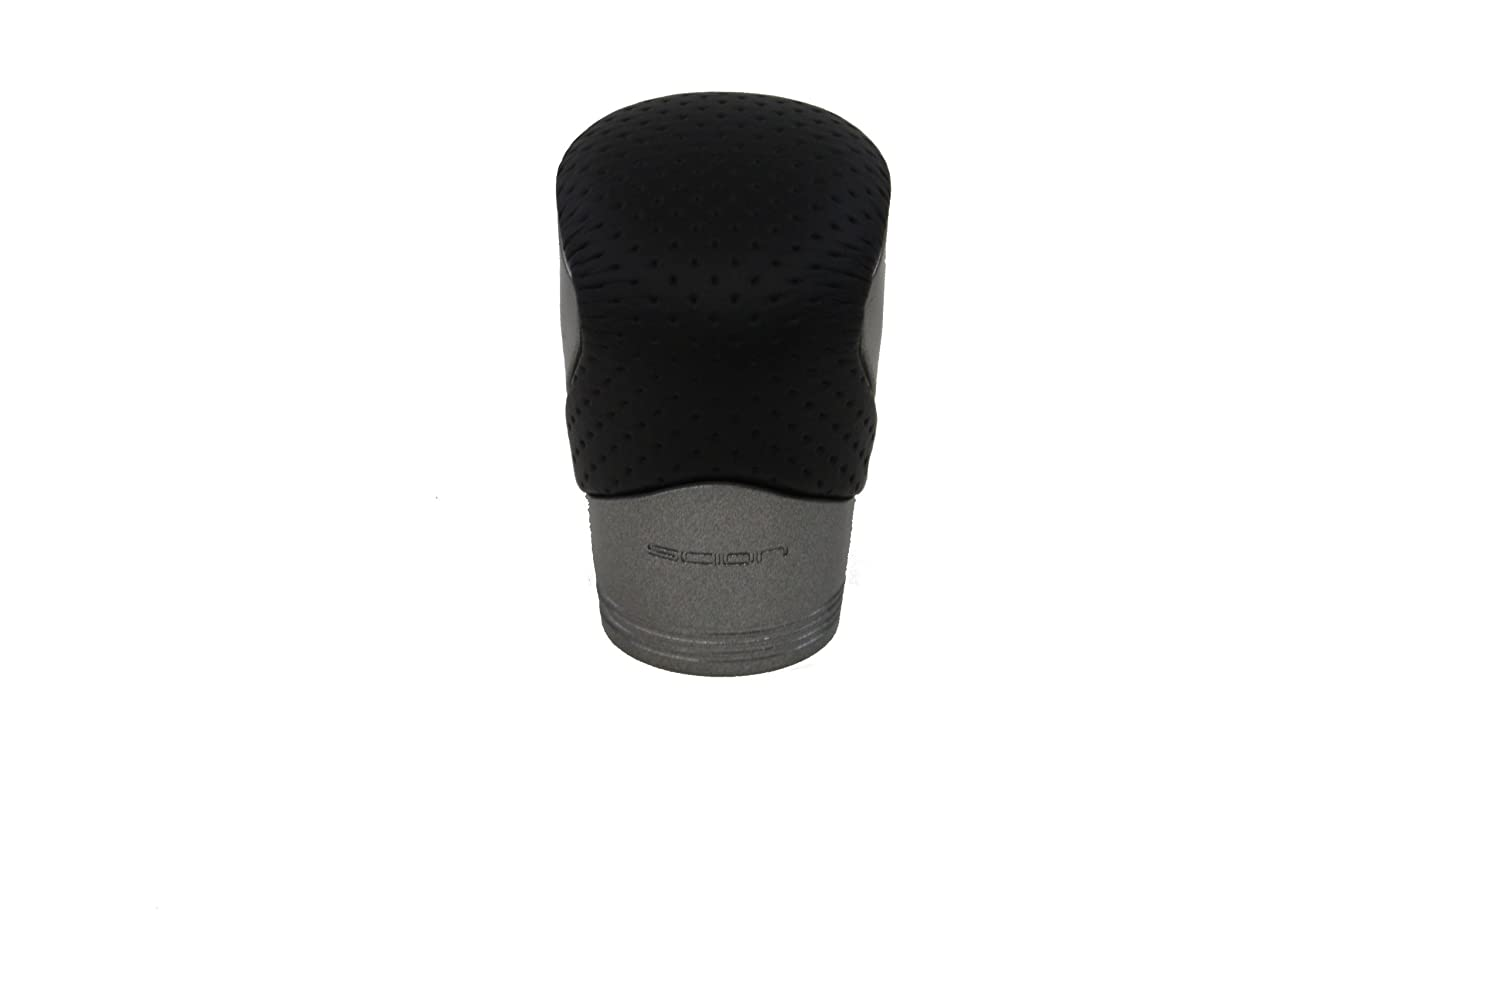 Scion Genuine Accessories PT37A-21111 Shift Knob